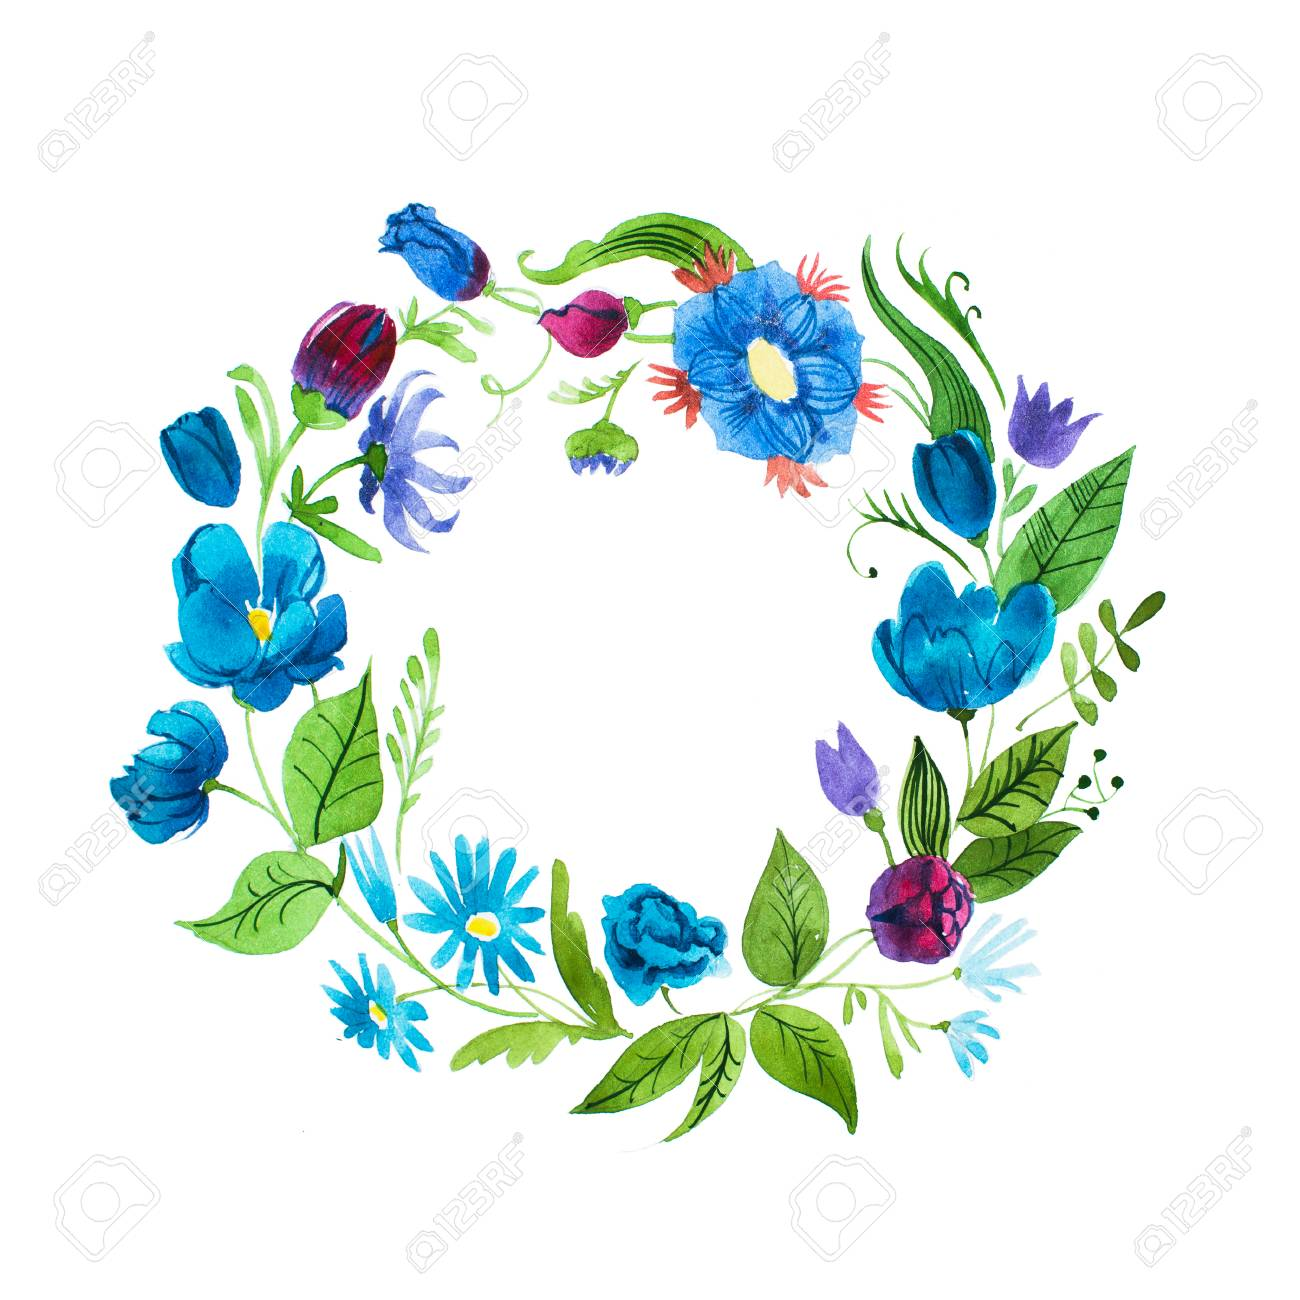 Watercolor floral wreath made of blue wild flowers isolated on stock photo watercolor floral wreath made of blue wild flowers isolated on white background izmirmasajfo